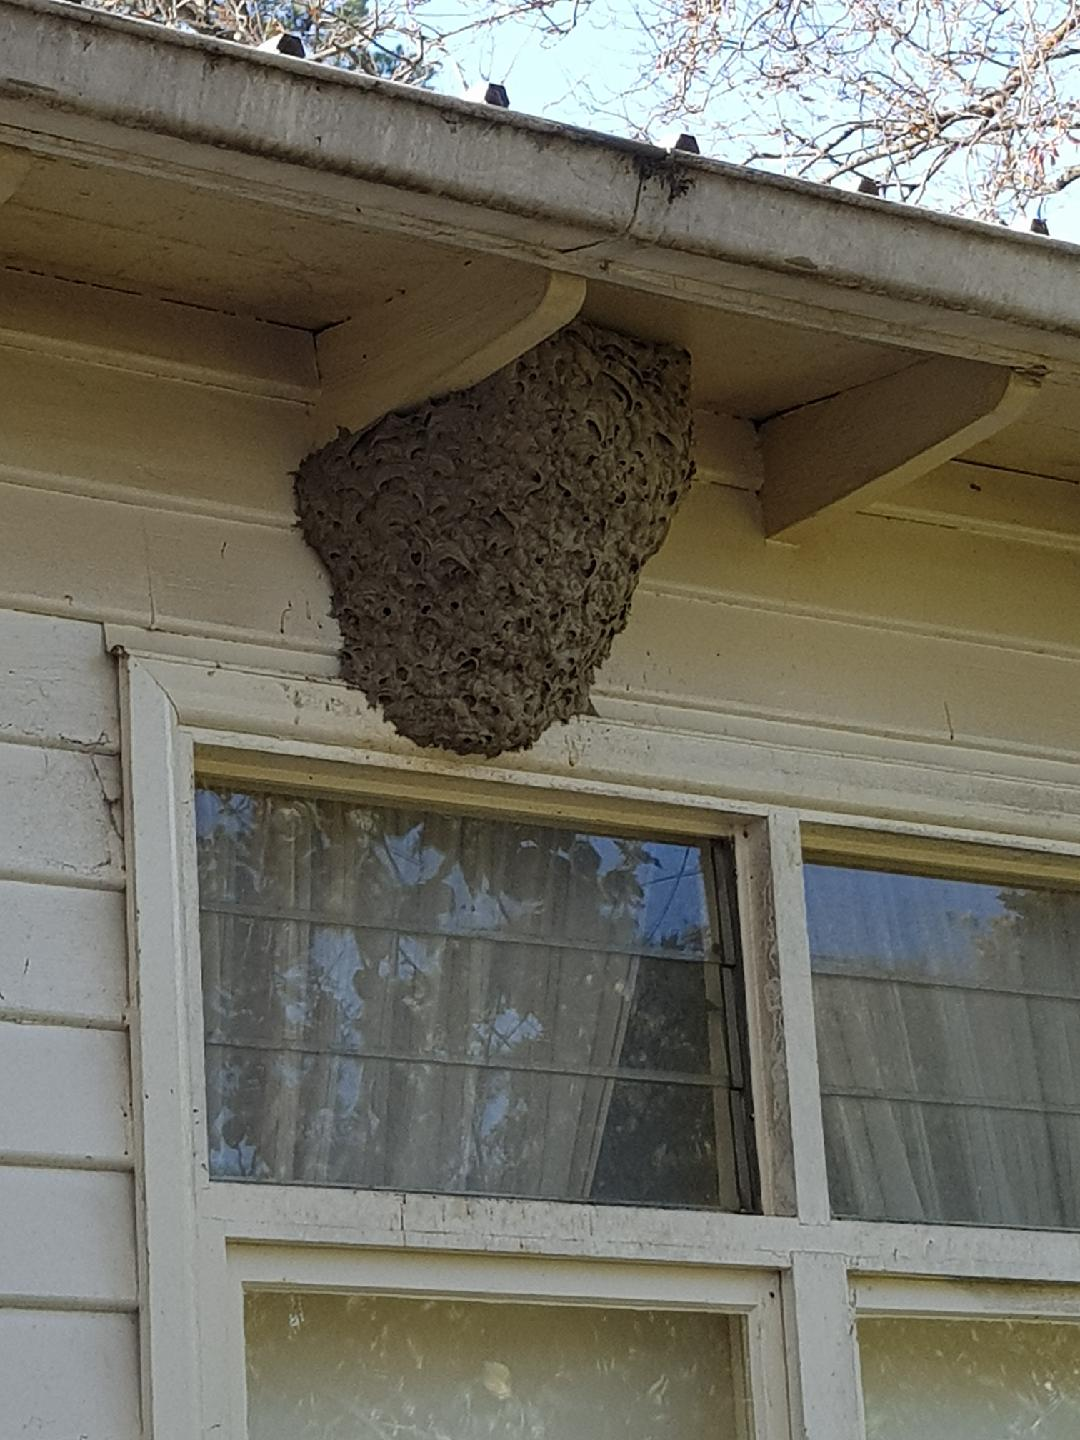 Wasp nest under the eaves